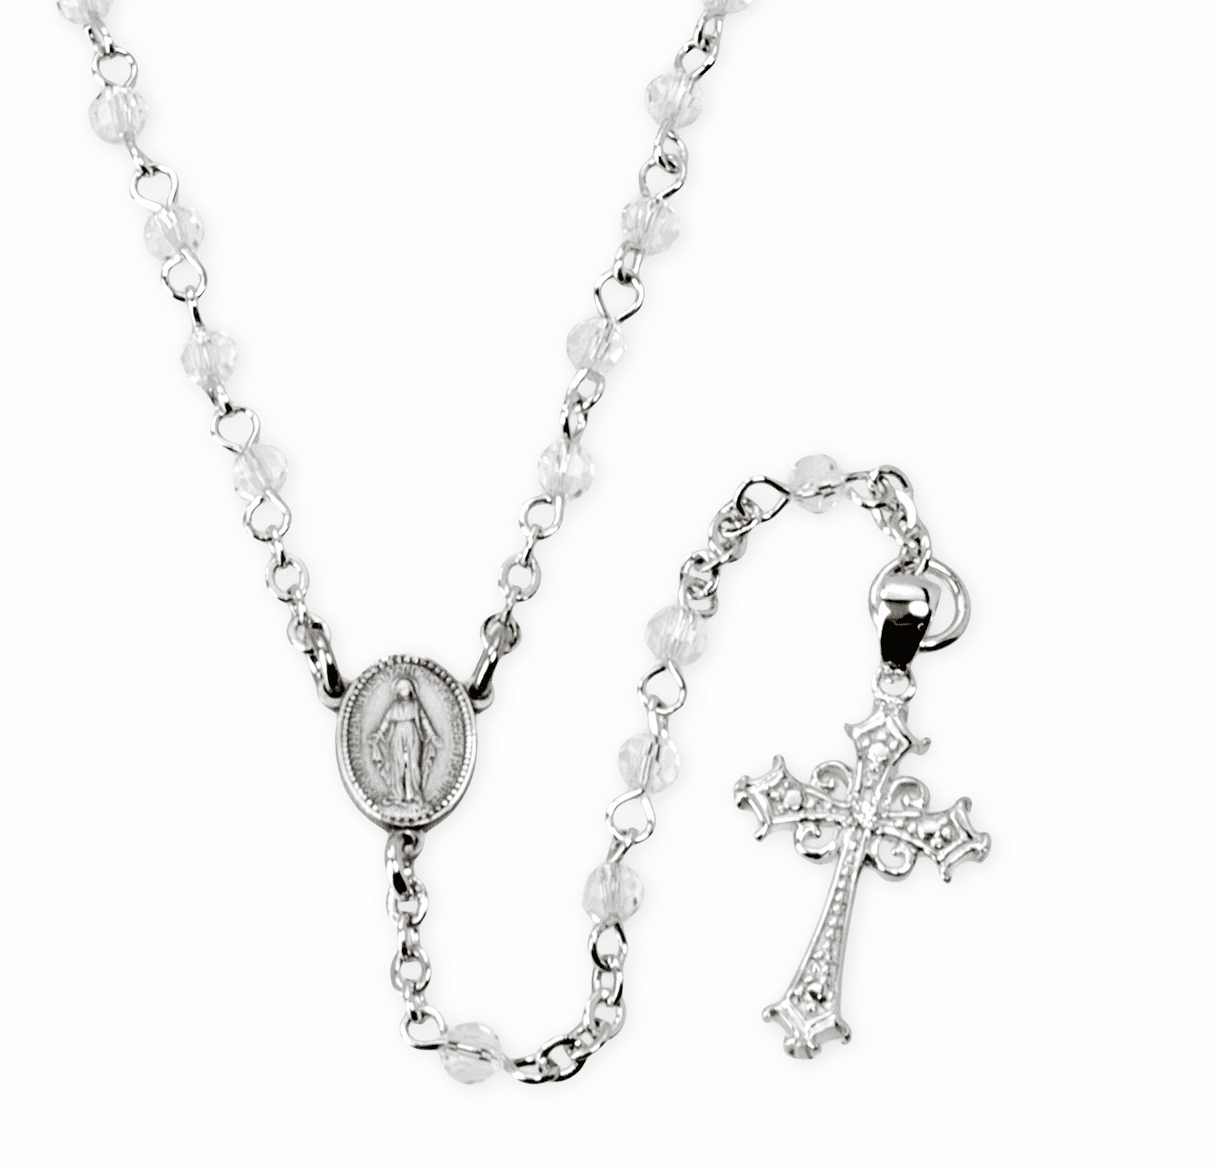 HMH Religious Crystal Rosary Necklace w/Cubic Zirconia Cross Sterling Silver Beaded Necklace